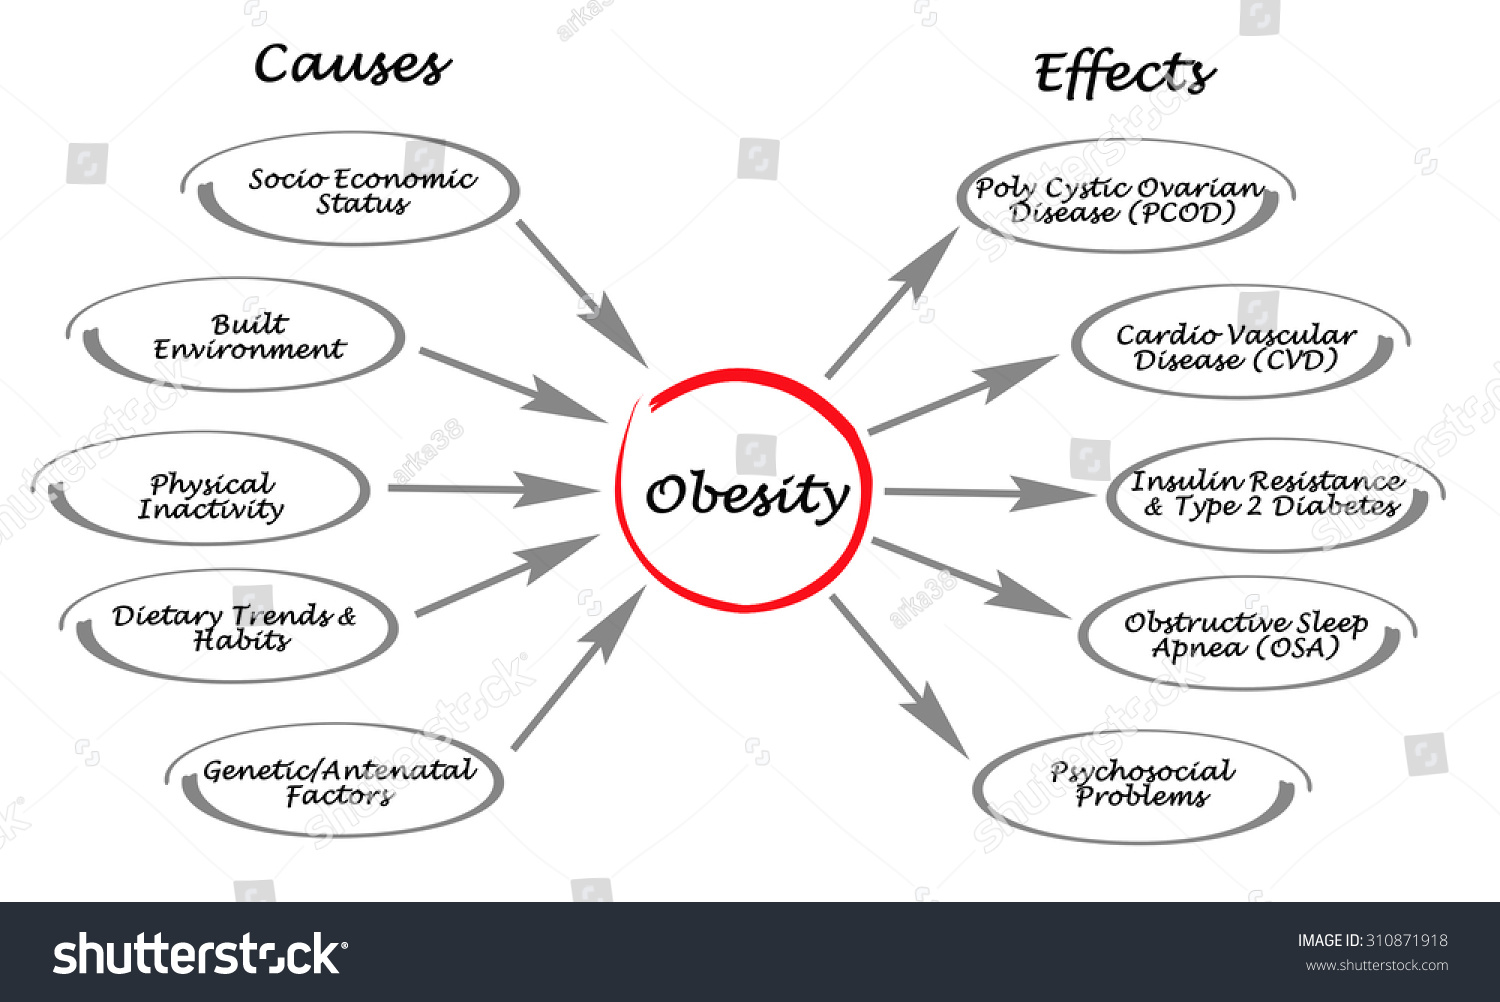 causes and efects of obesity Diabetes - obesity is the major cause of type 2 diabetes this type of diabetes usually begins in adulthood but, is now actually occurring in children obesity can cause resistance to insulin, the hormone that regulates blood sugar when obesity causes insulin resistance, the blood sugar becomes elevated.